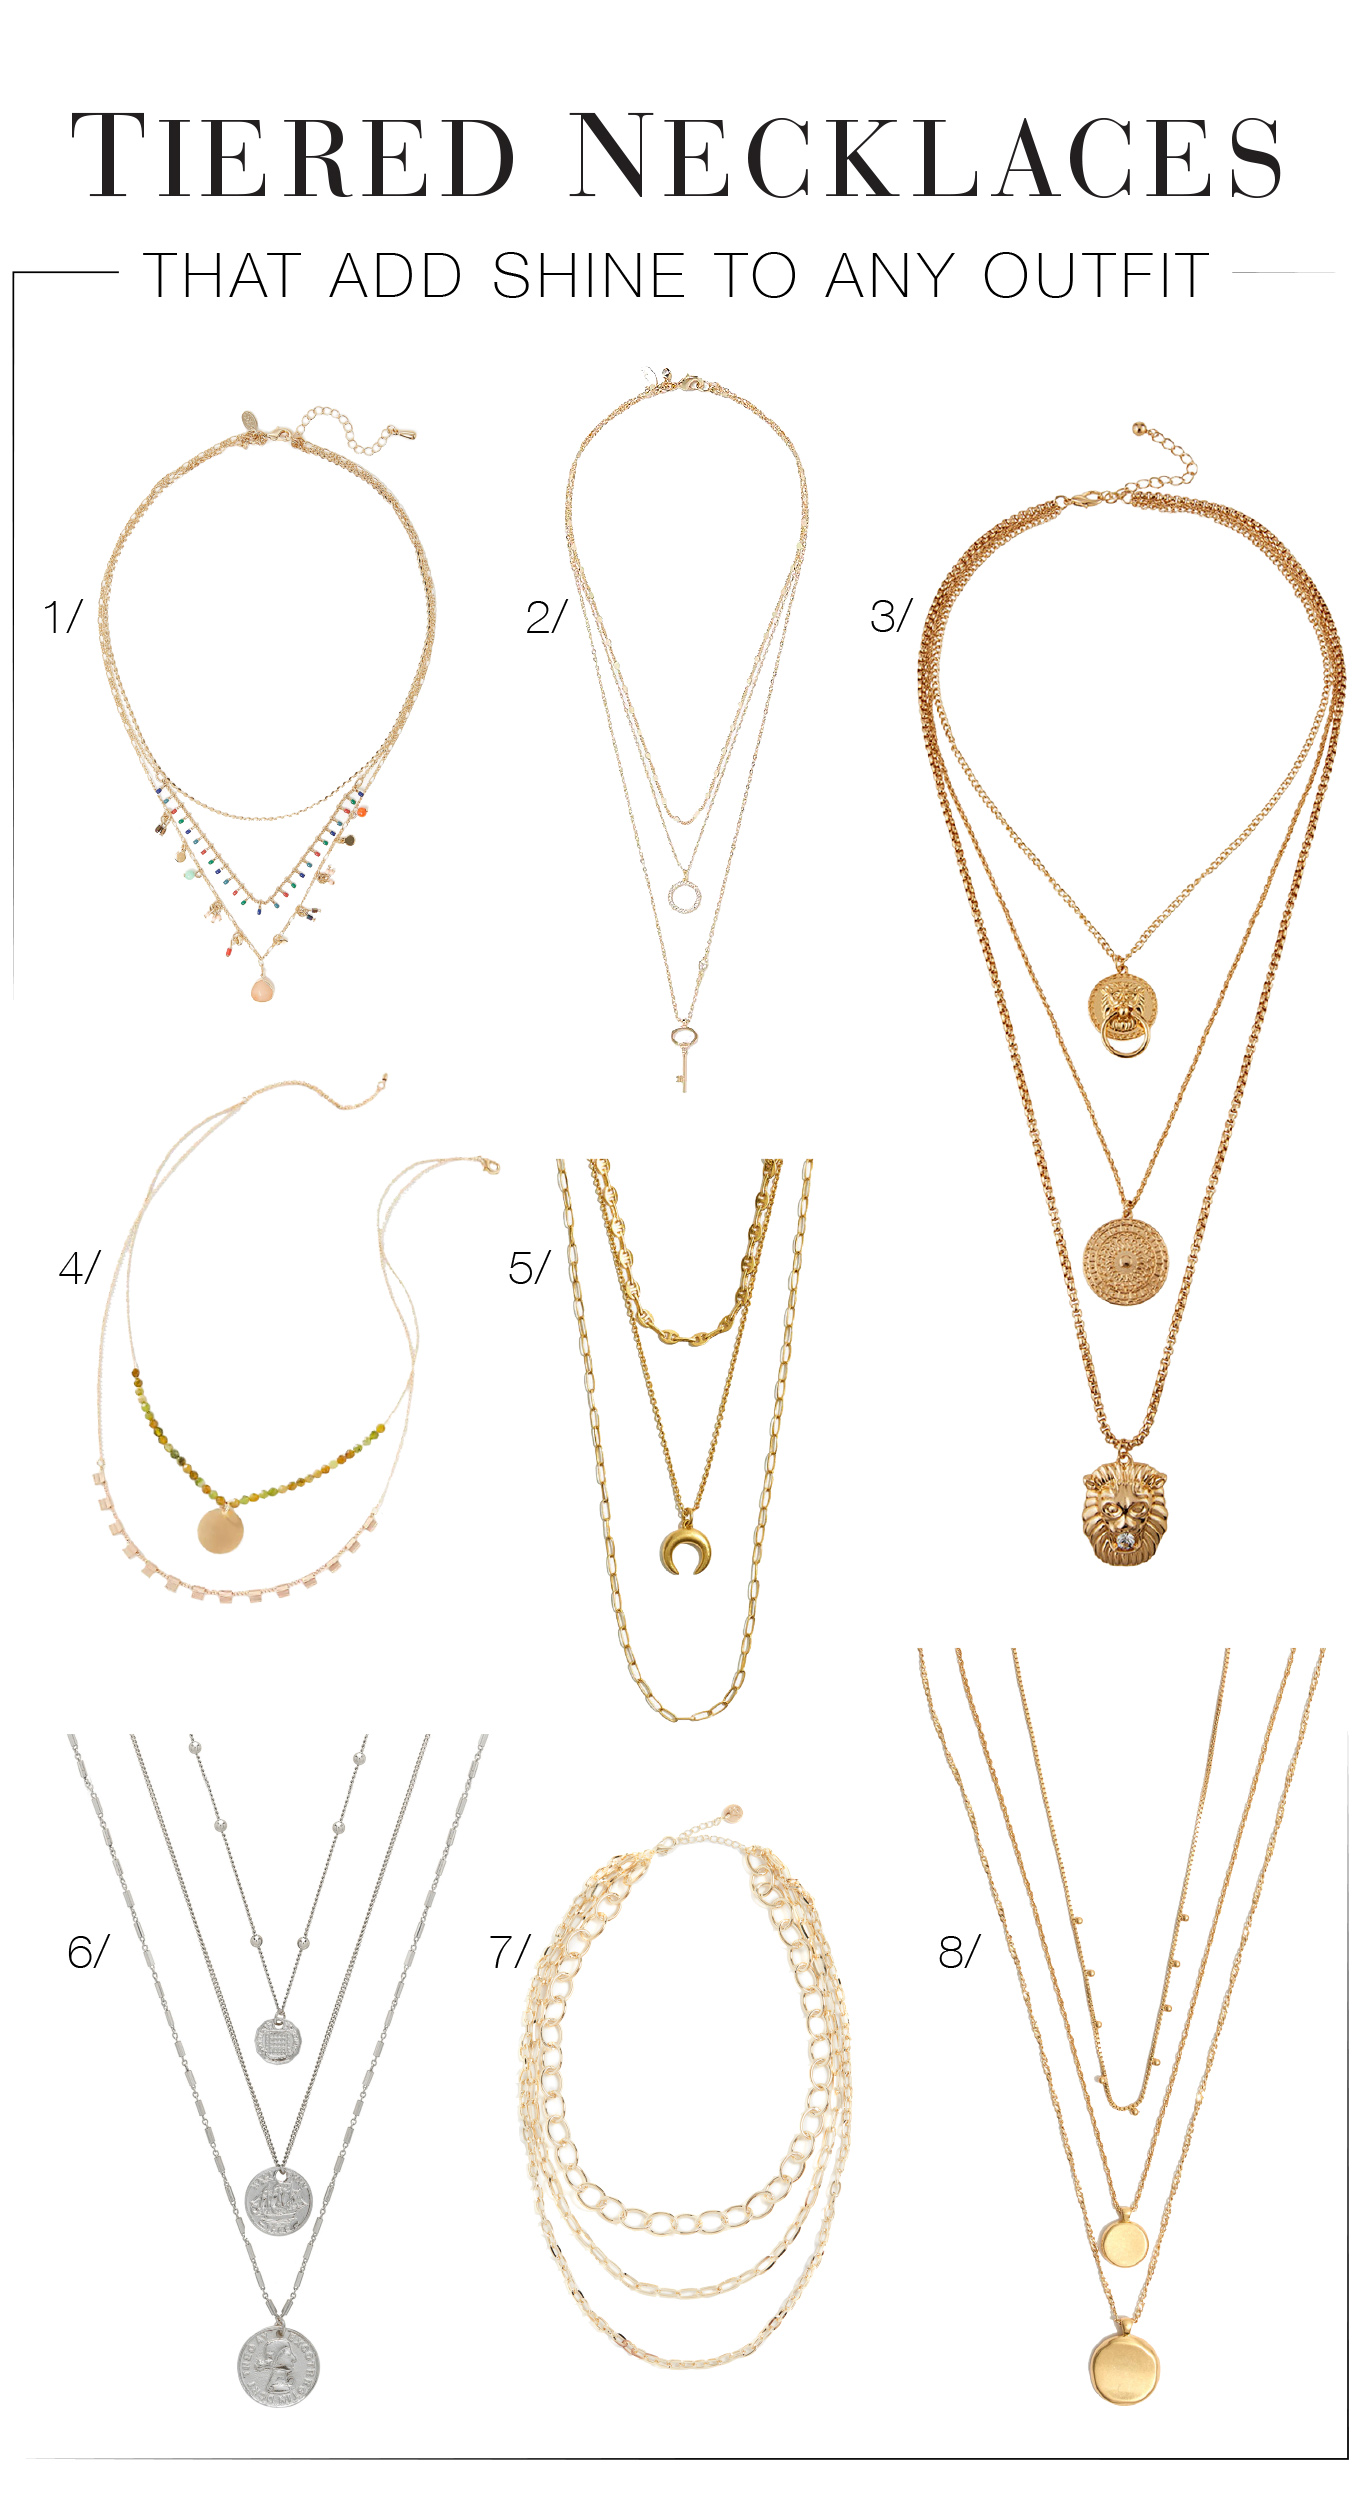 Layered necklaces are lovely accessories. Think easy-to-wear jewelry (to feel put-together for a FaceTime chat or Zoom meeting) or a 1-&-done outfit upgrade.